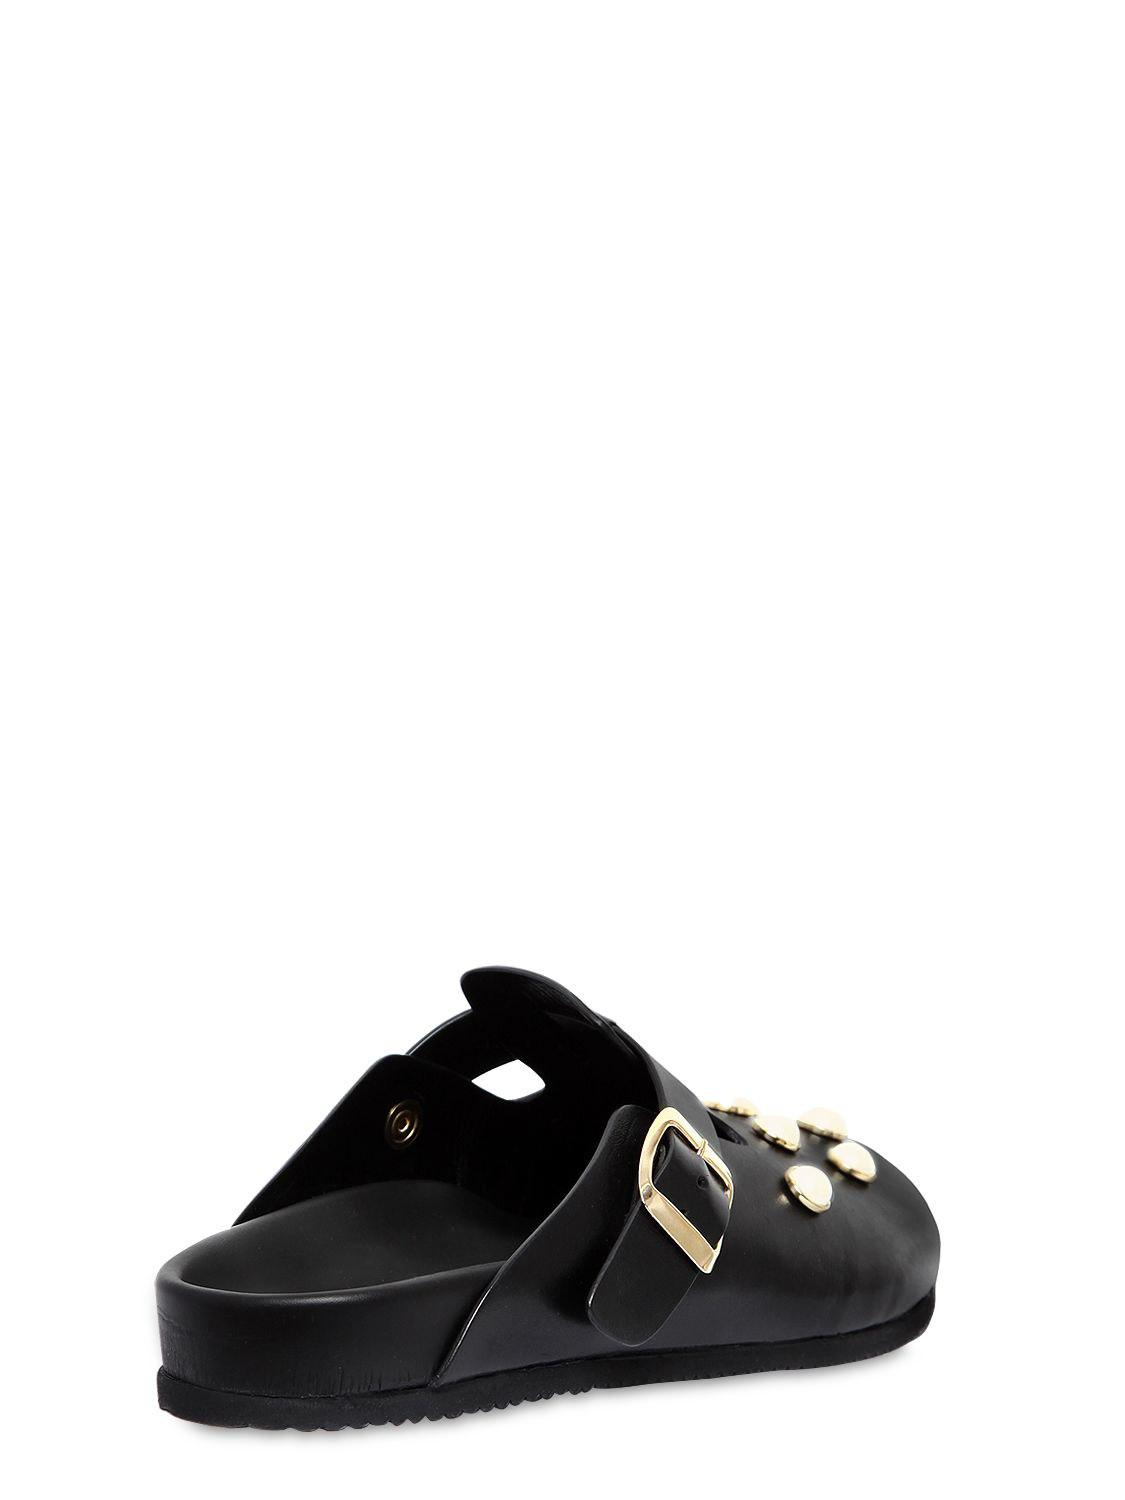 COLIAC 20MM CORNELIA EMBELLISHED LEATHER FLATS b2bwqh